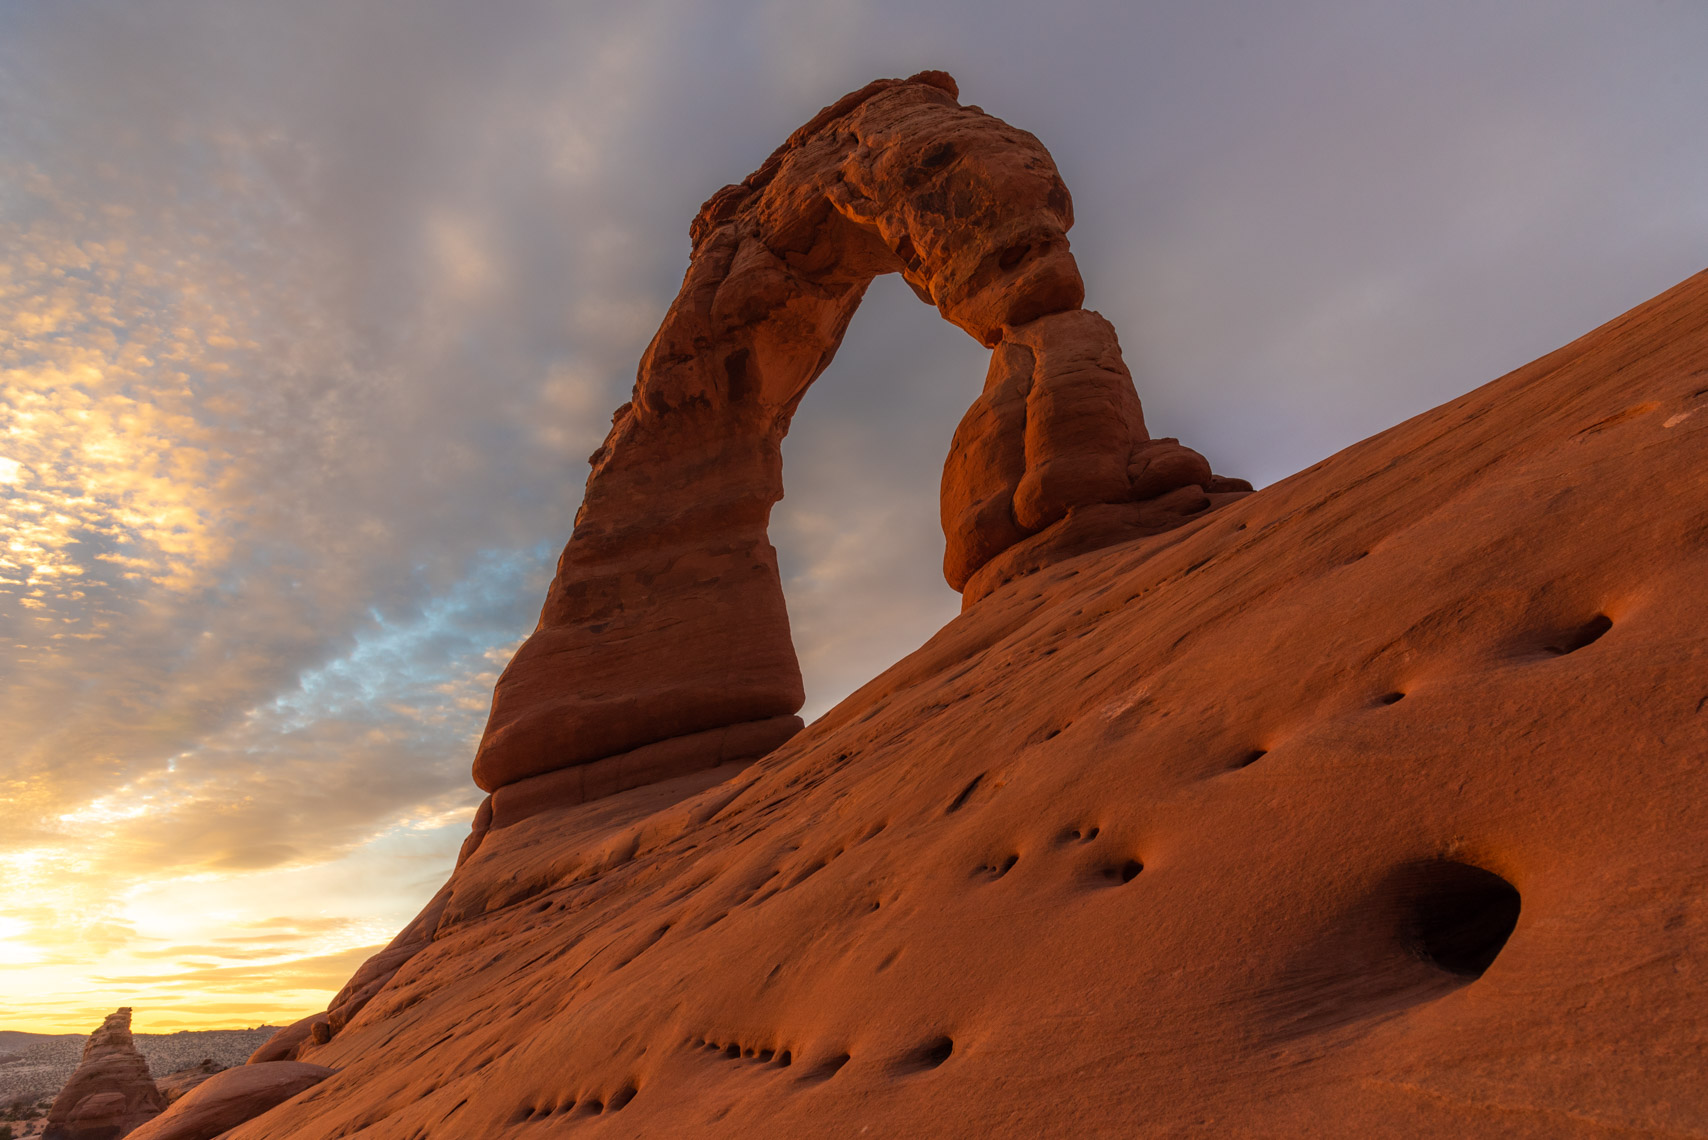 Landscape Photography, Arches National Park, Moab, Utah, Delicate Arch